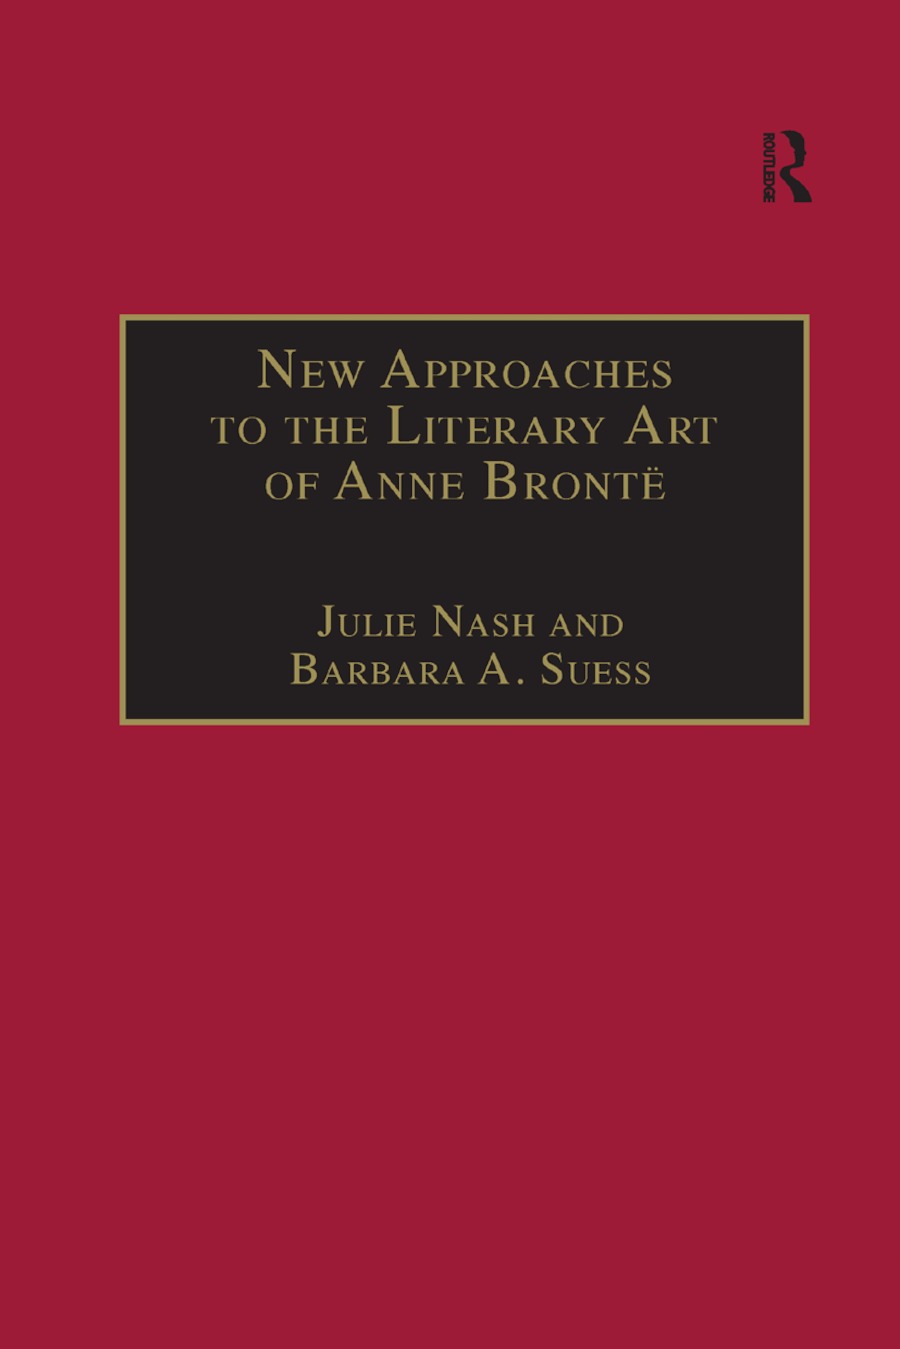 New Approaches to the Literary Art of Anne Bronte book cover